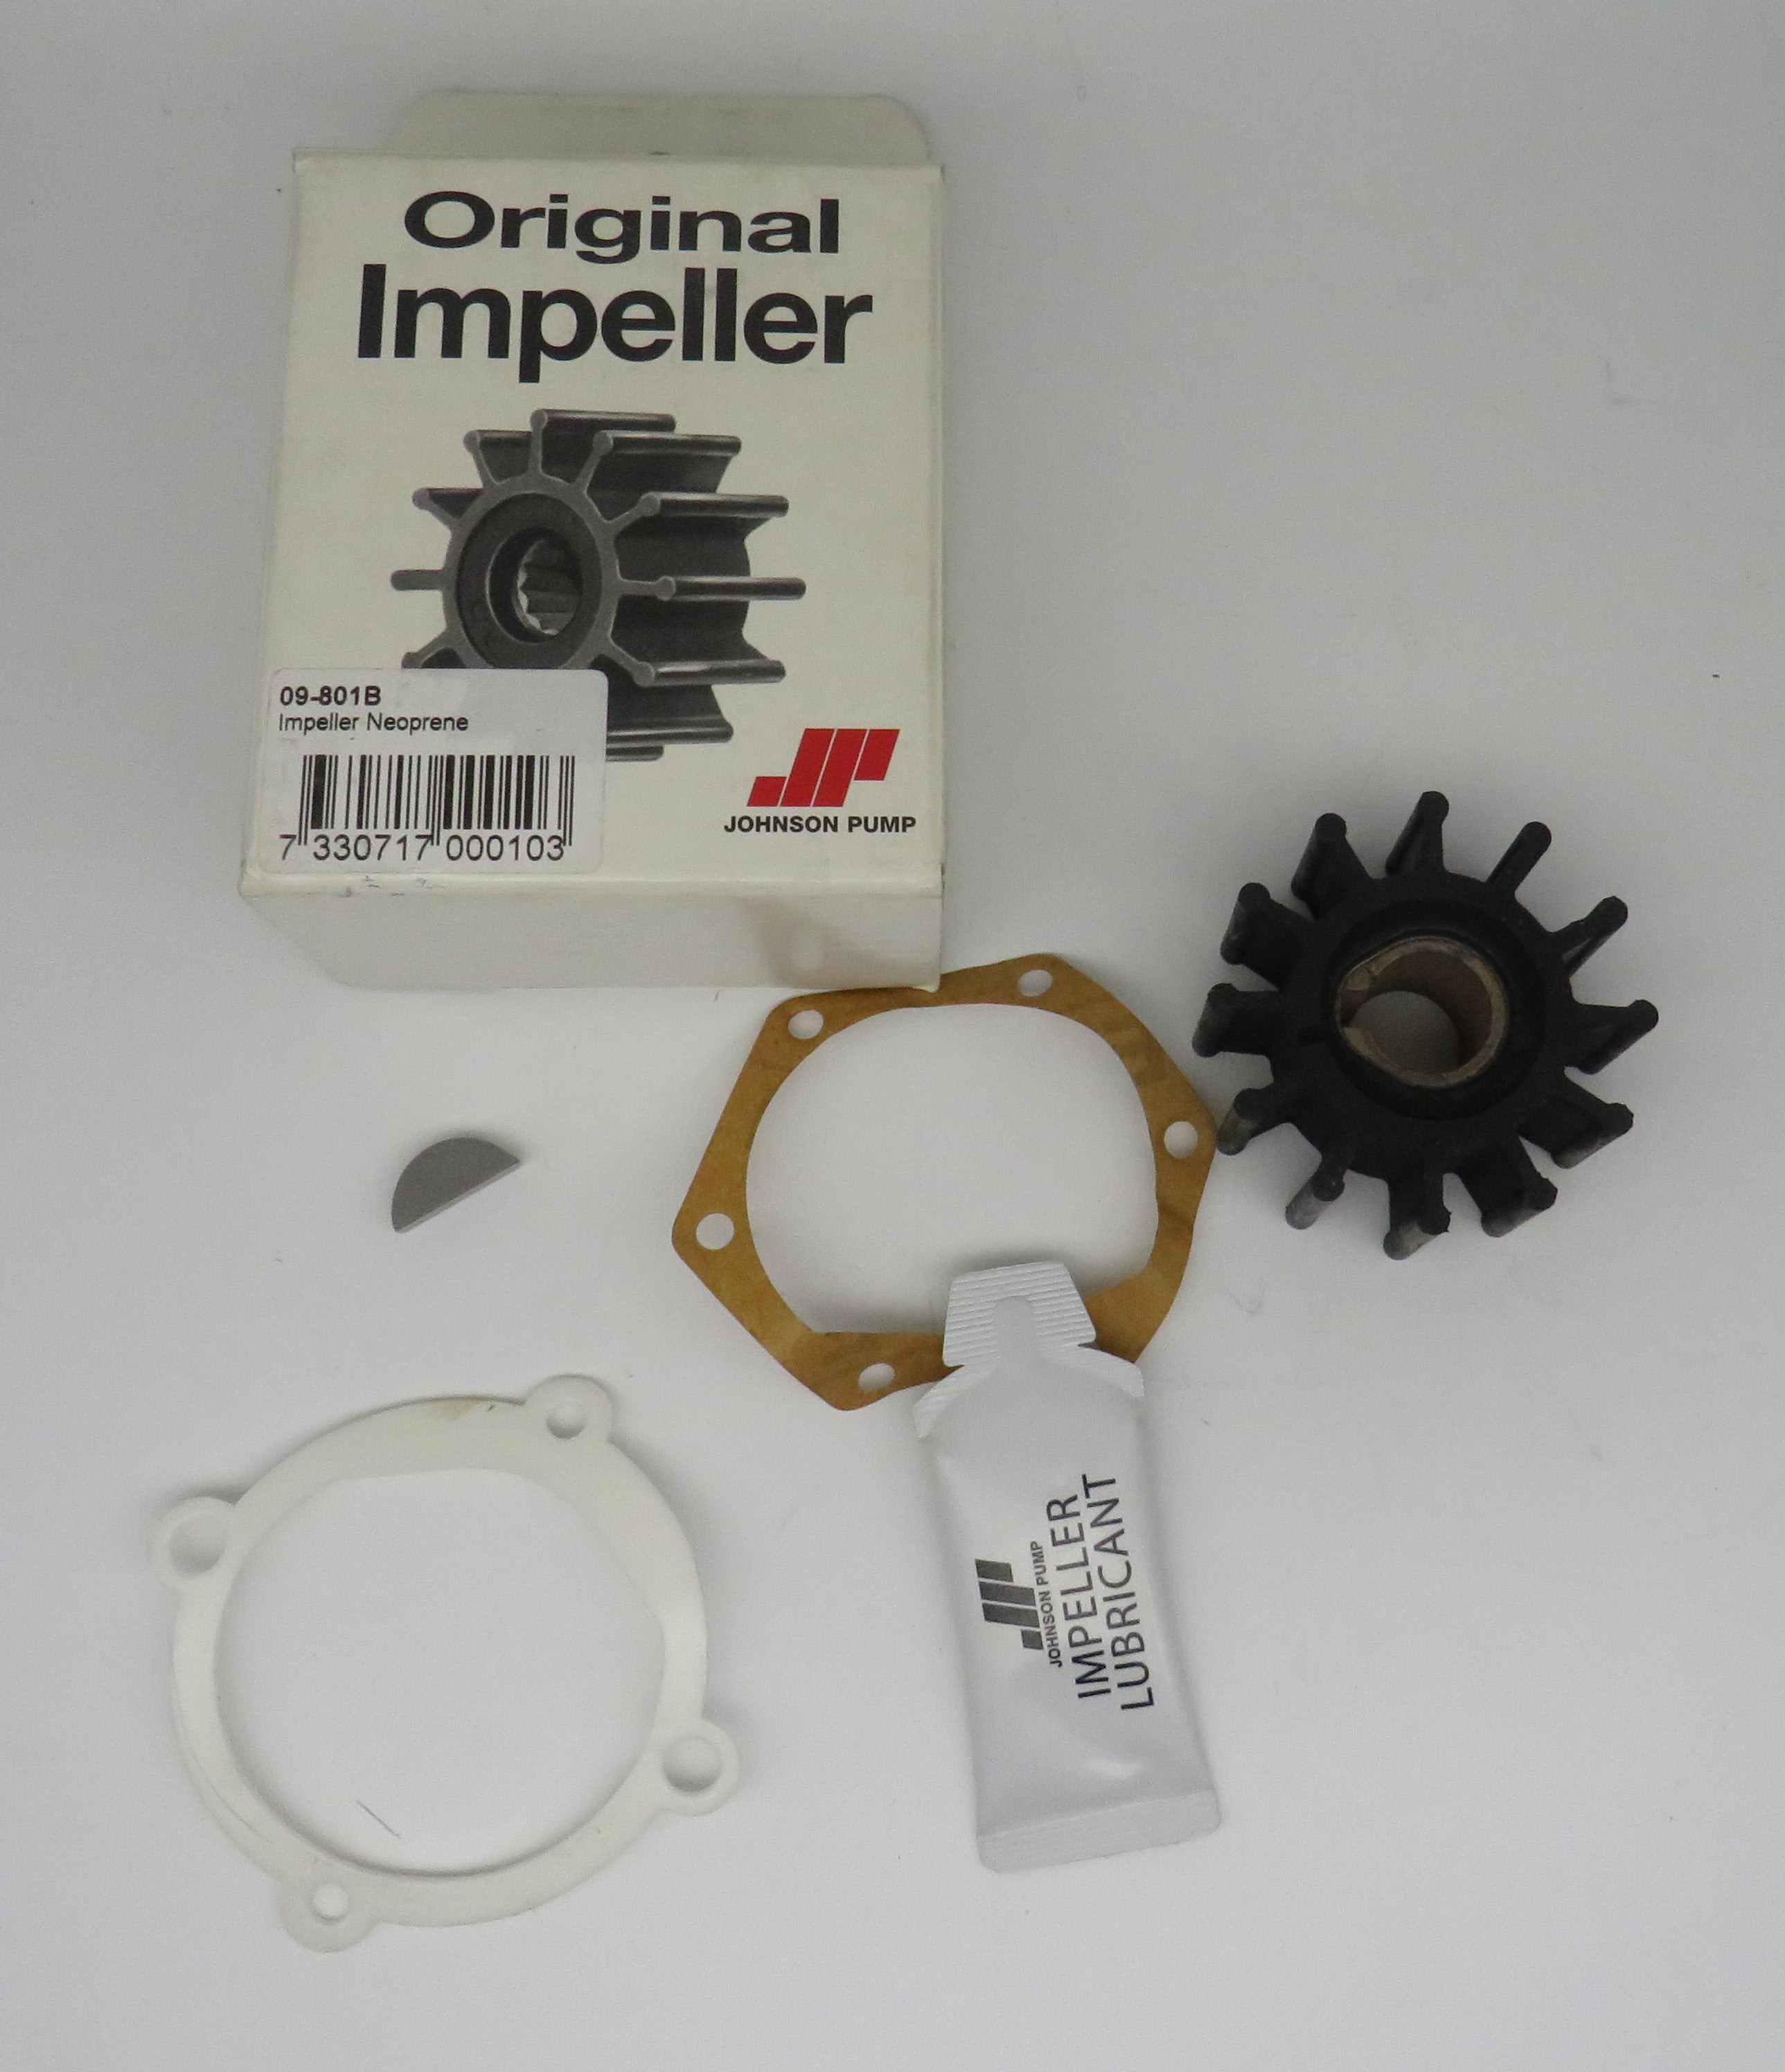 09-801B Johnson Pump Impeller Kit